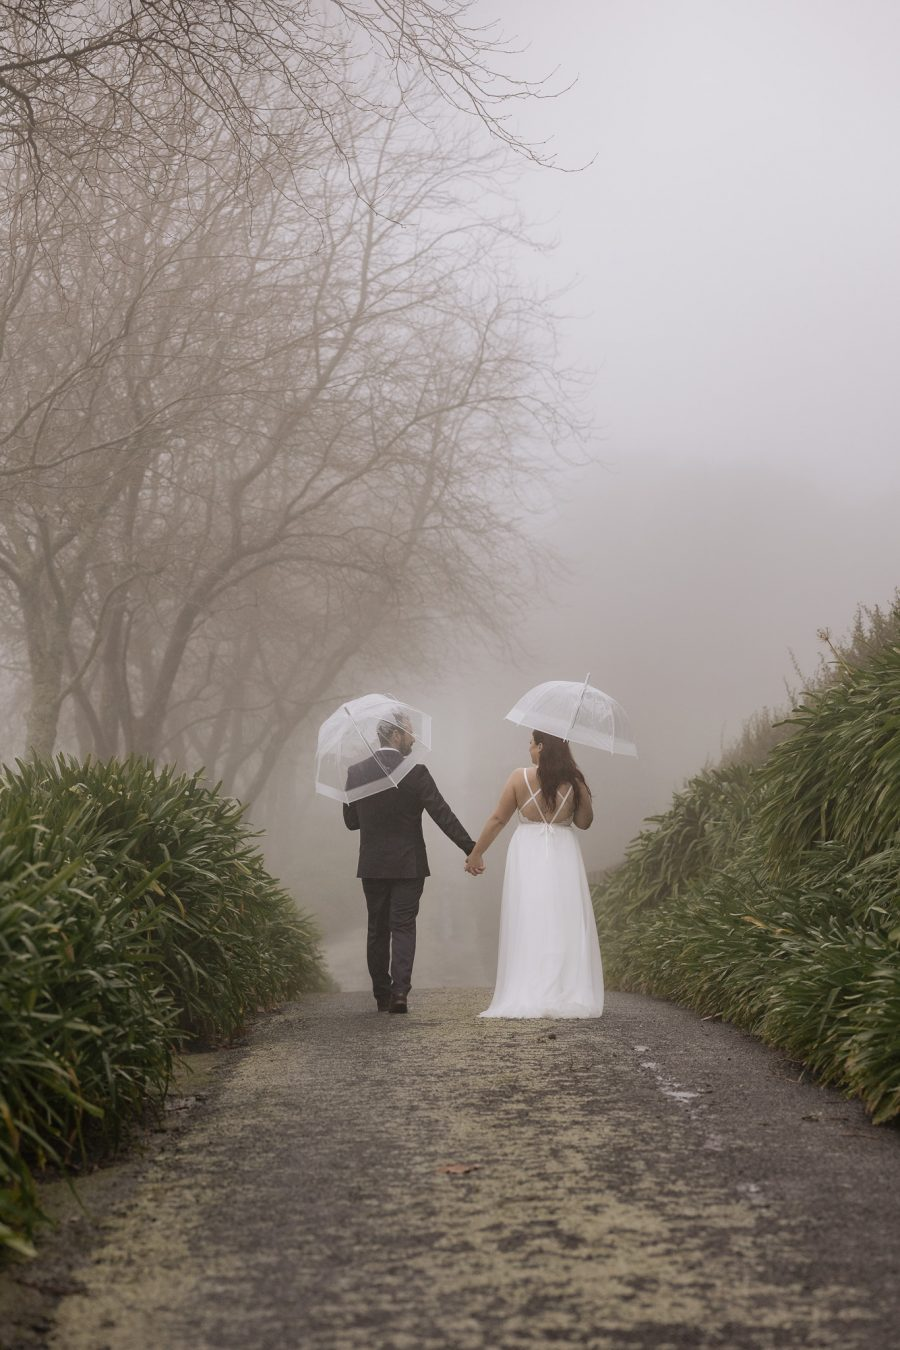 Bride and groom walking away holding hands on driveway in the rain and fog on a winter day